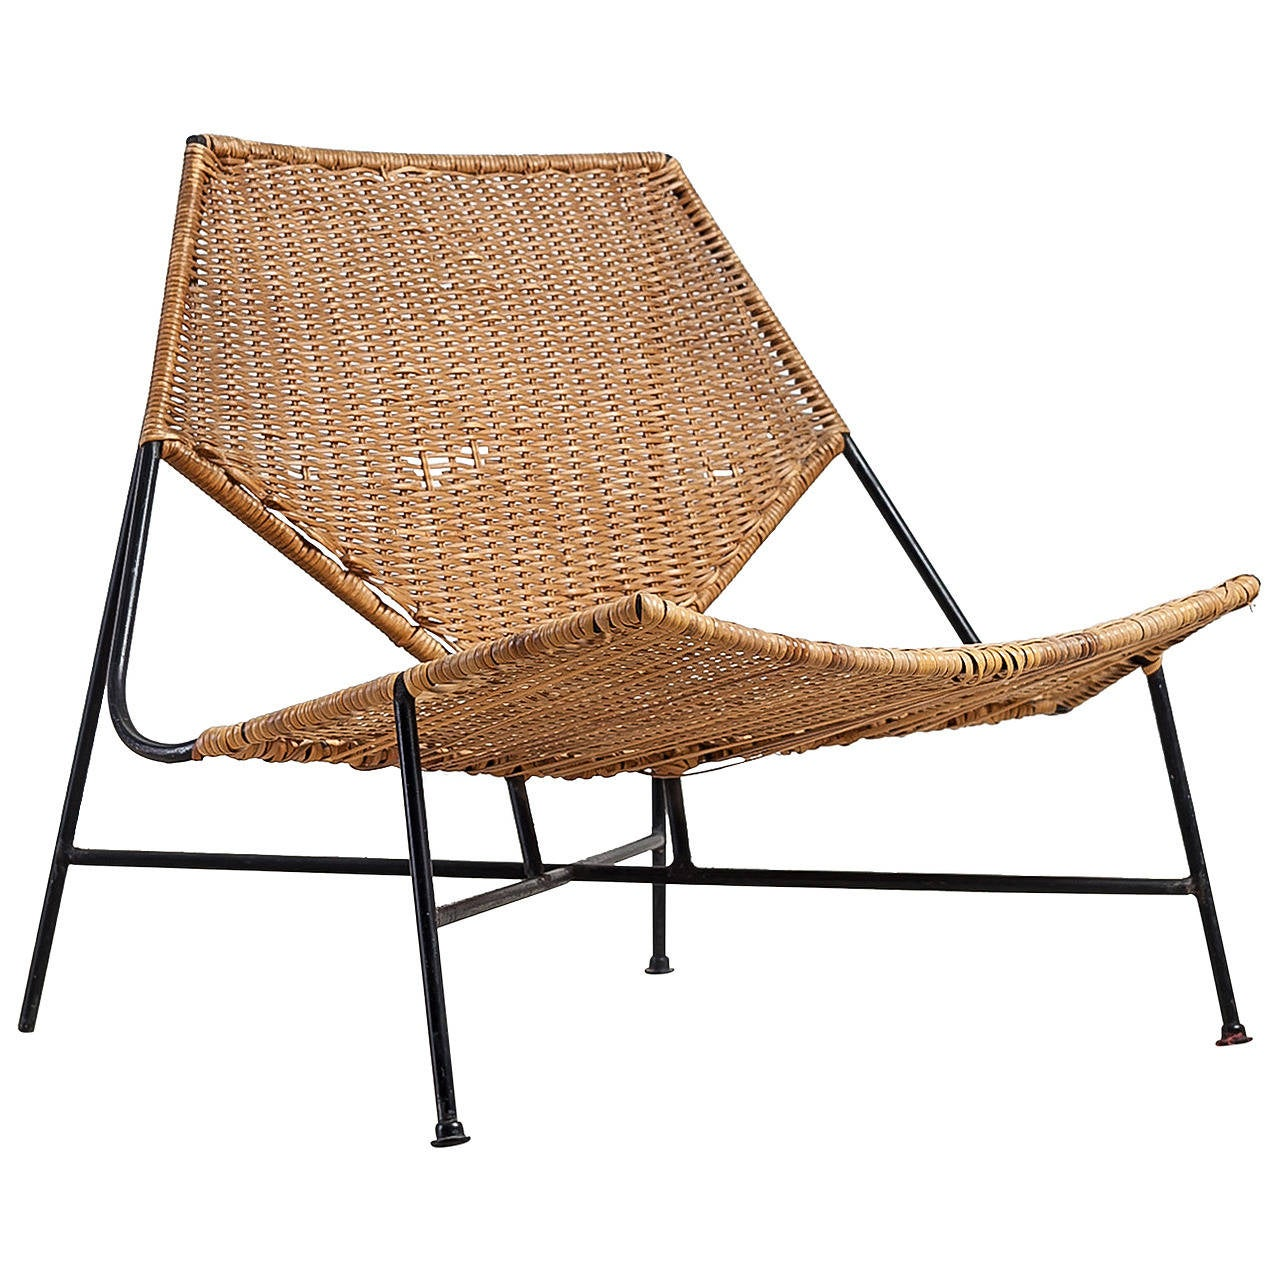 Arthur Umanoff Rattan Lounge Chair At 1stdibs